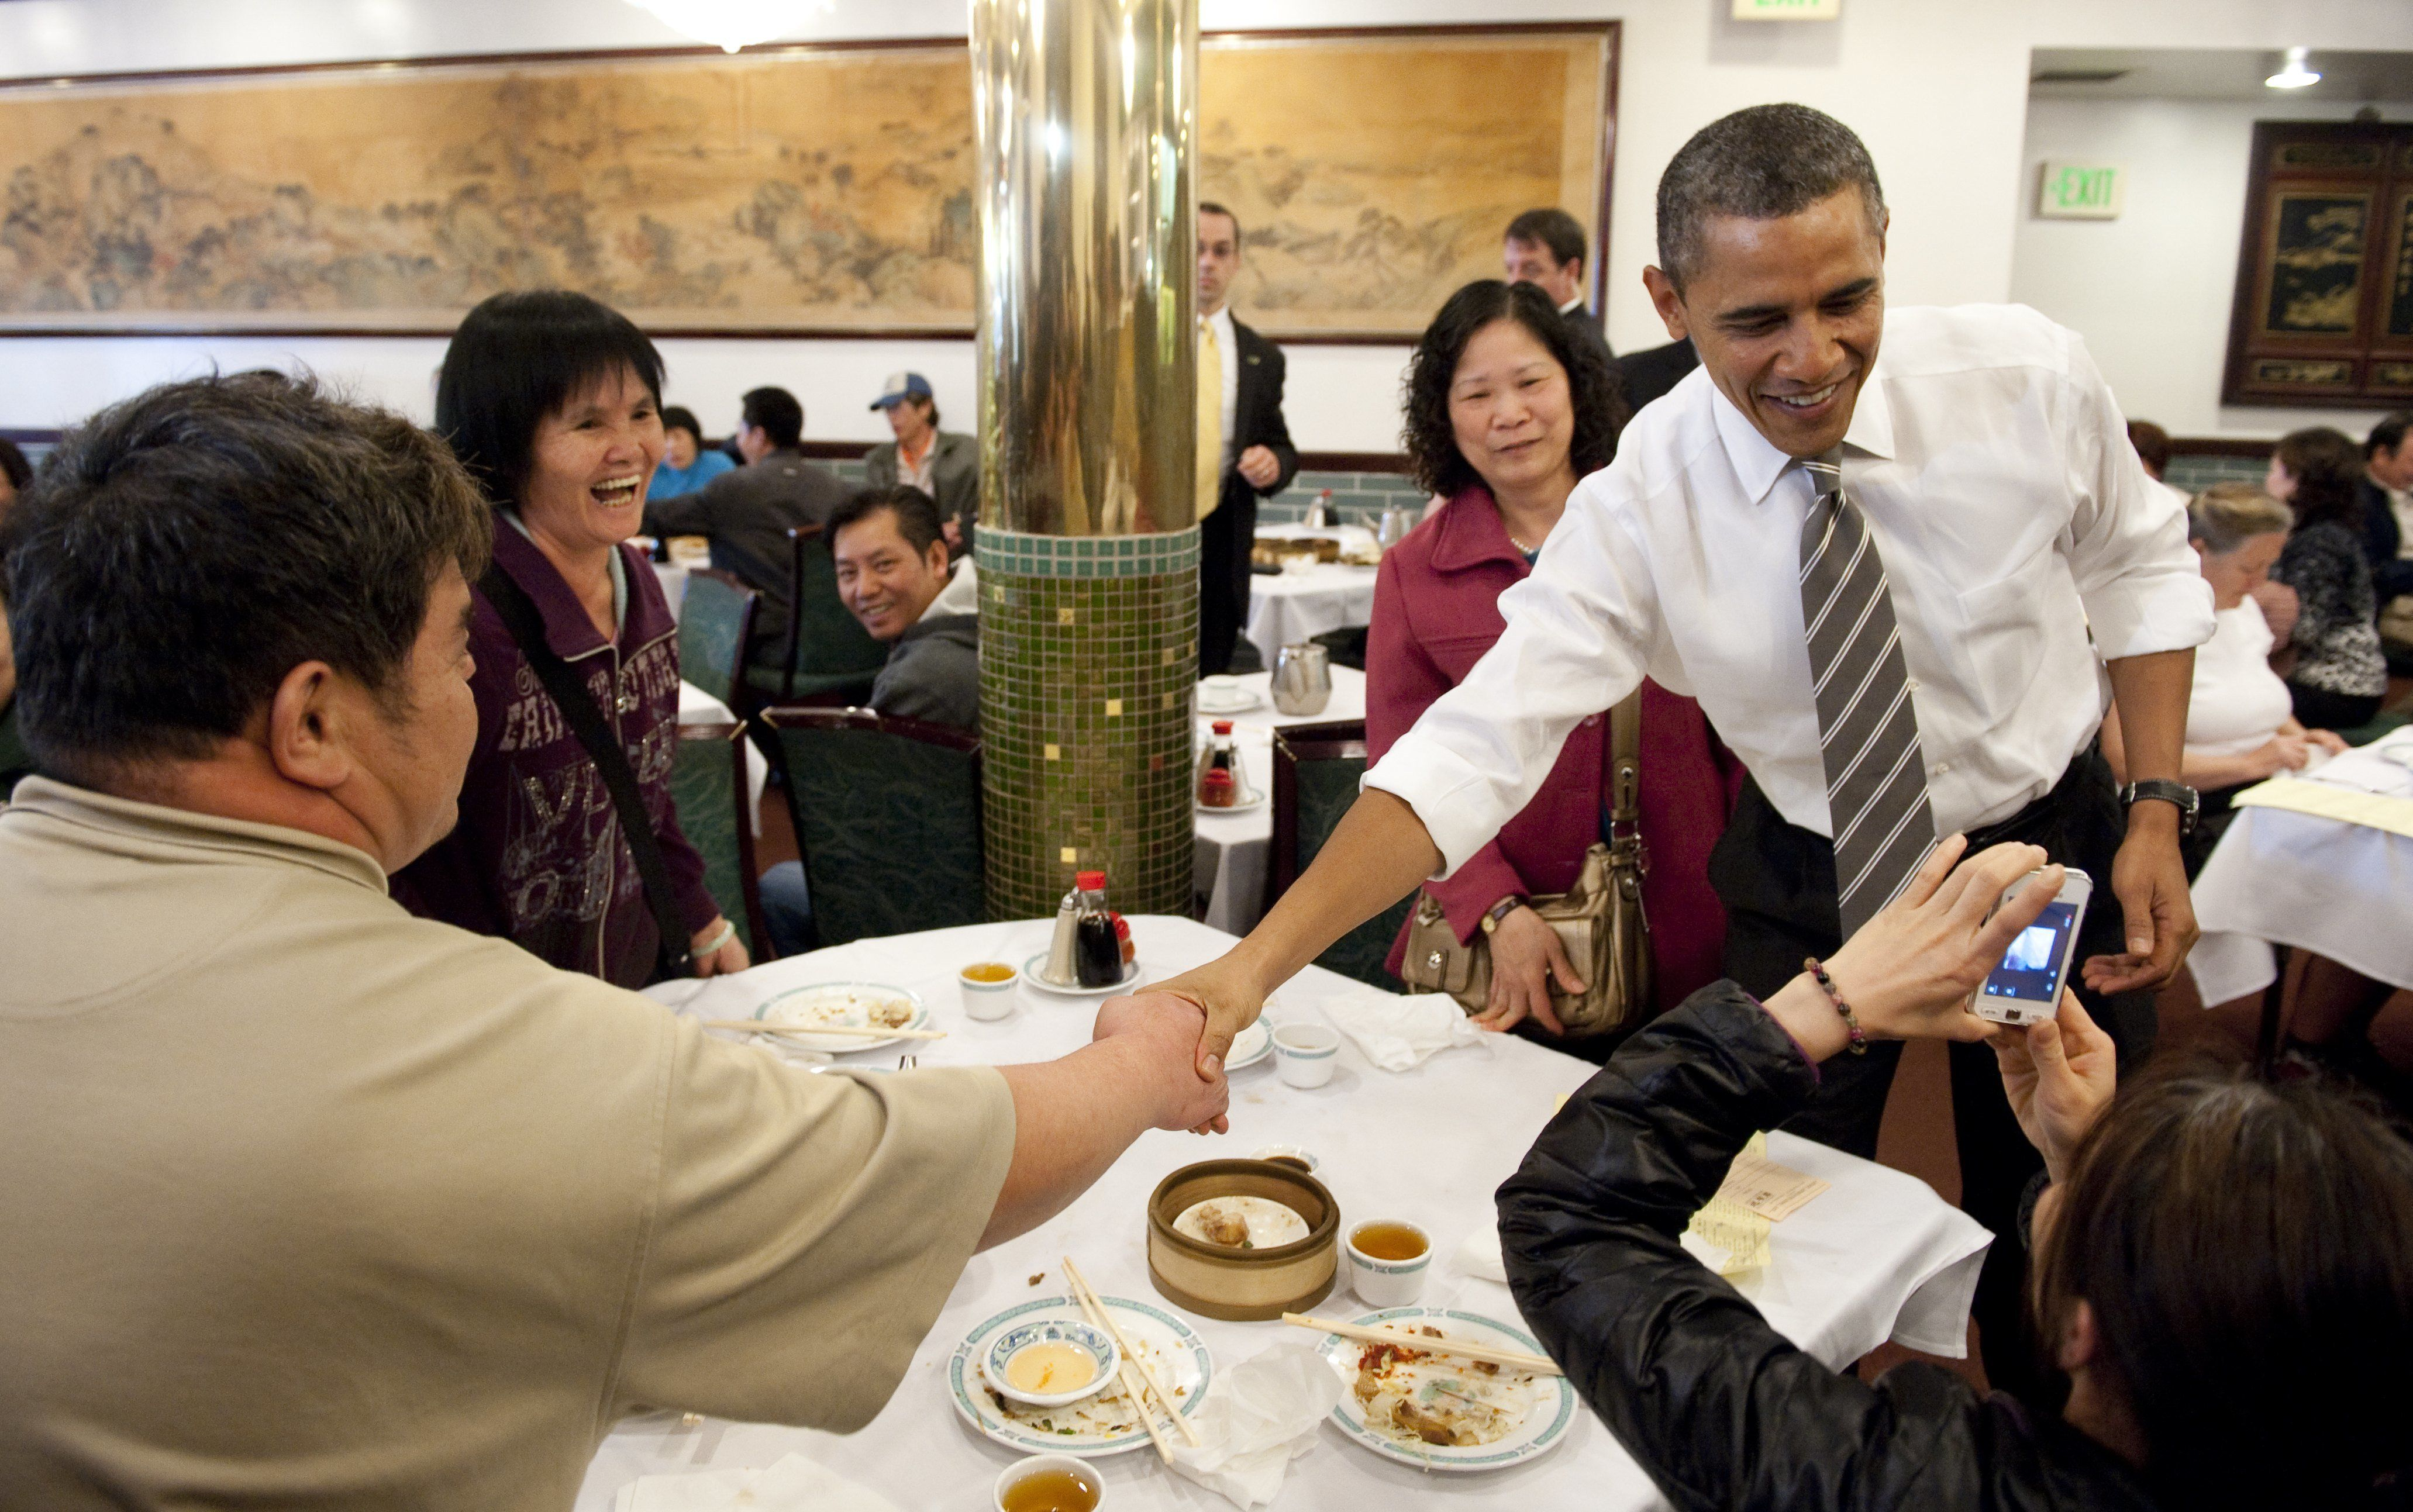 US President Barack Obama greets patrons during a surpise visit to Great Eastern Restaurant for dim sum in San Francisco's Chinatown on February 16, 2012.     AFP PHOTO/Saul LOEB (Photo credit should read SAUL LOEB/AFP/Getty Images)